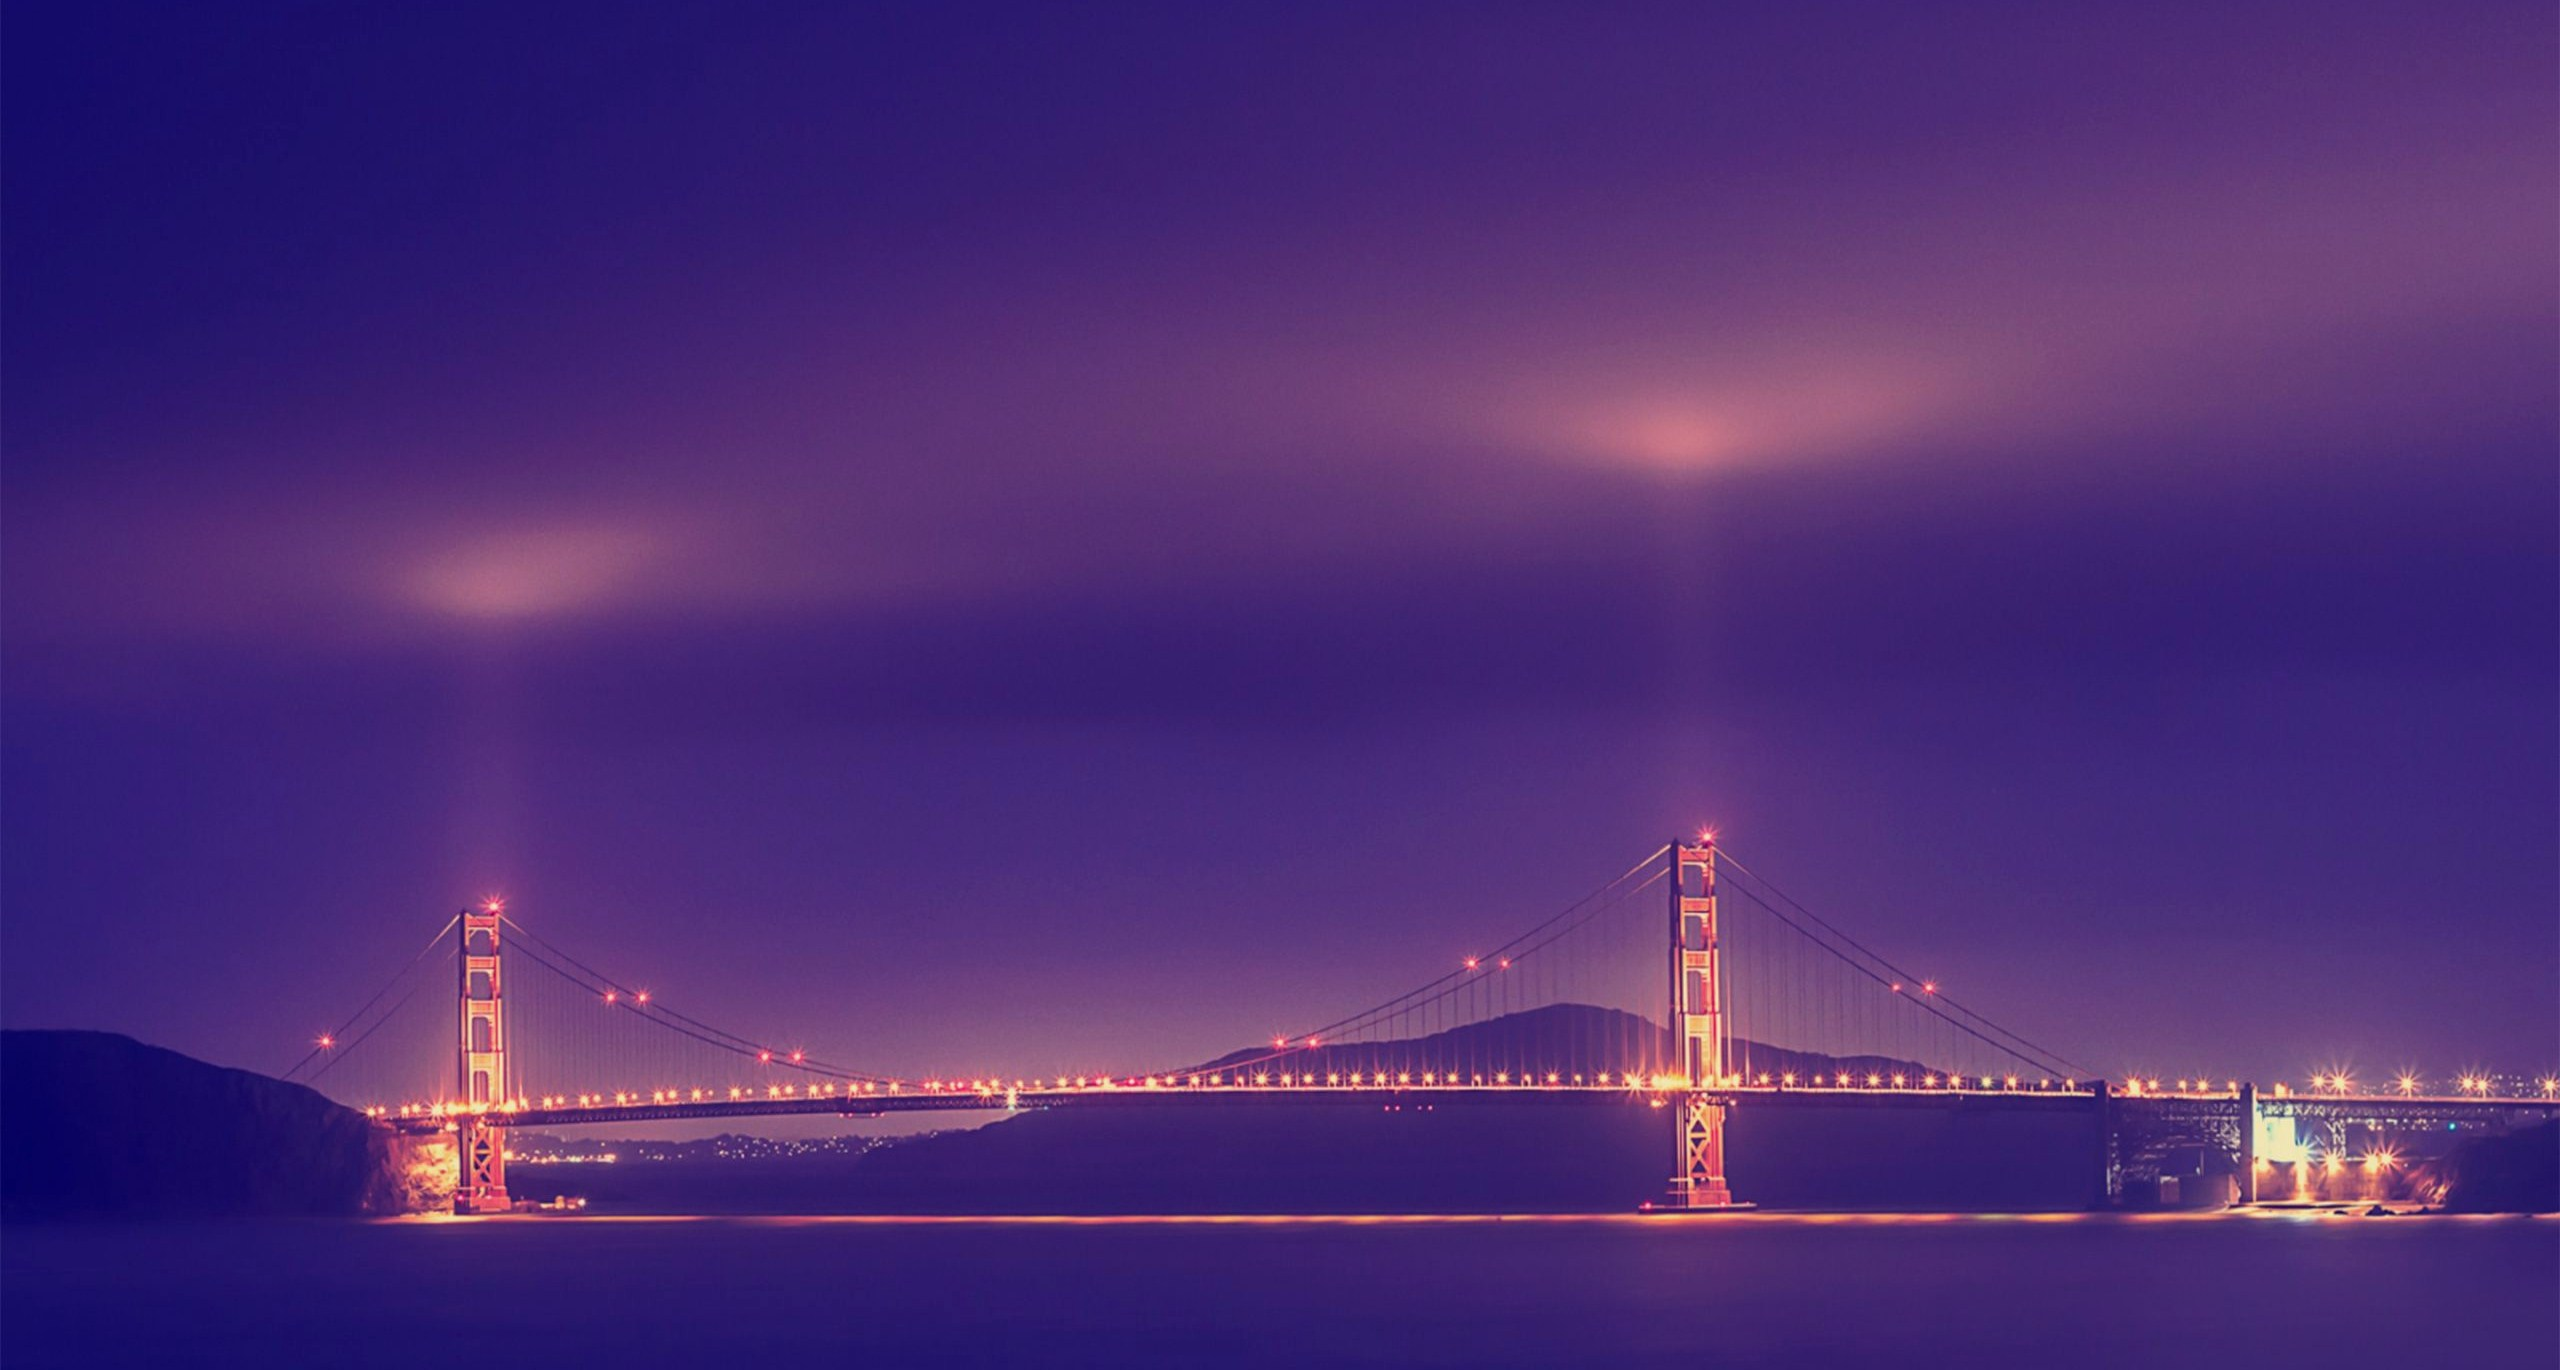 san-francisco-4k-hd-wallpapers-unabuenaidea.es (27)